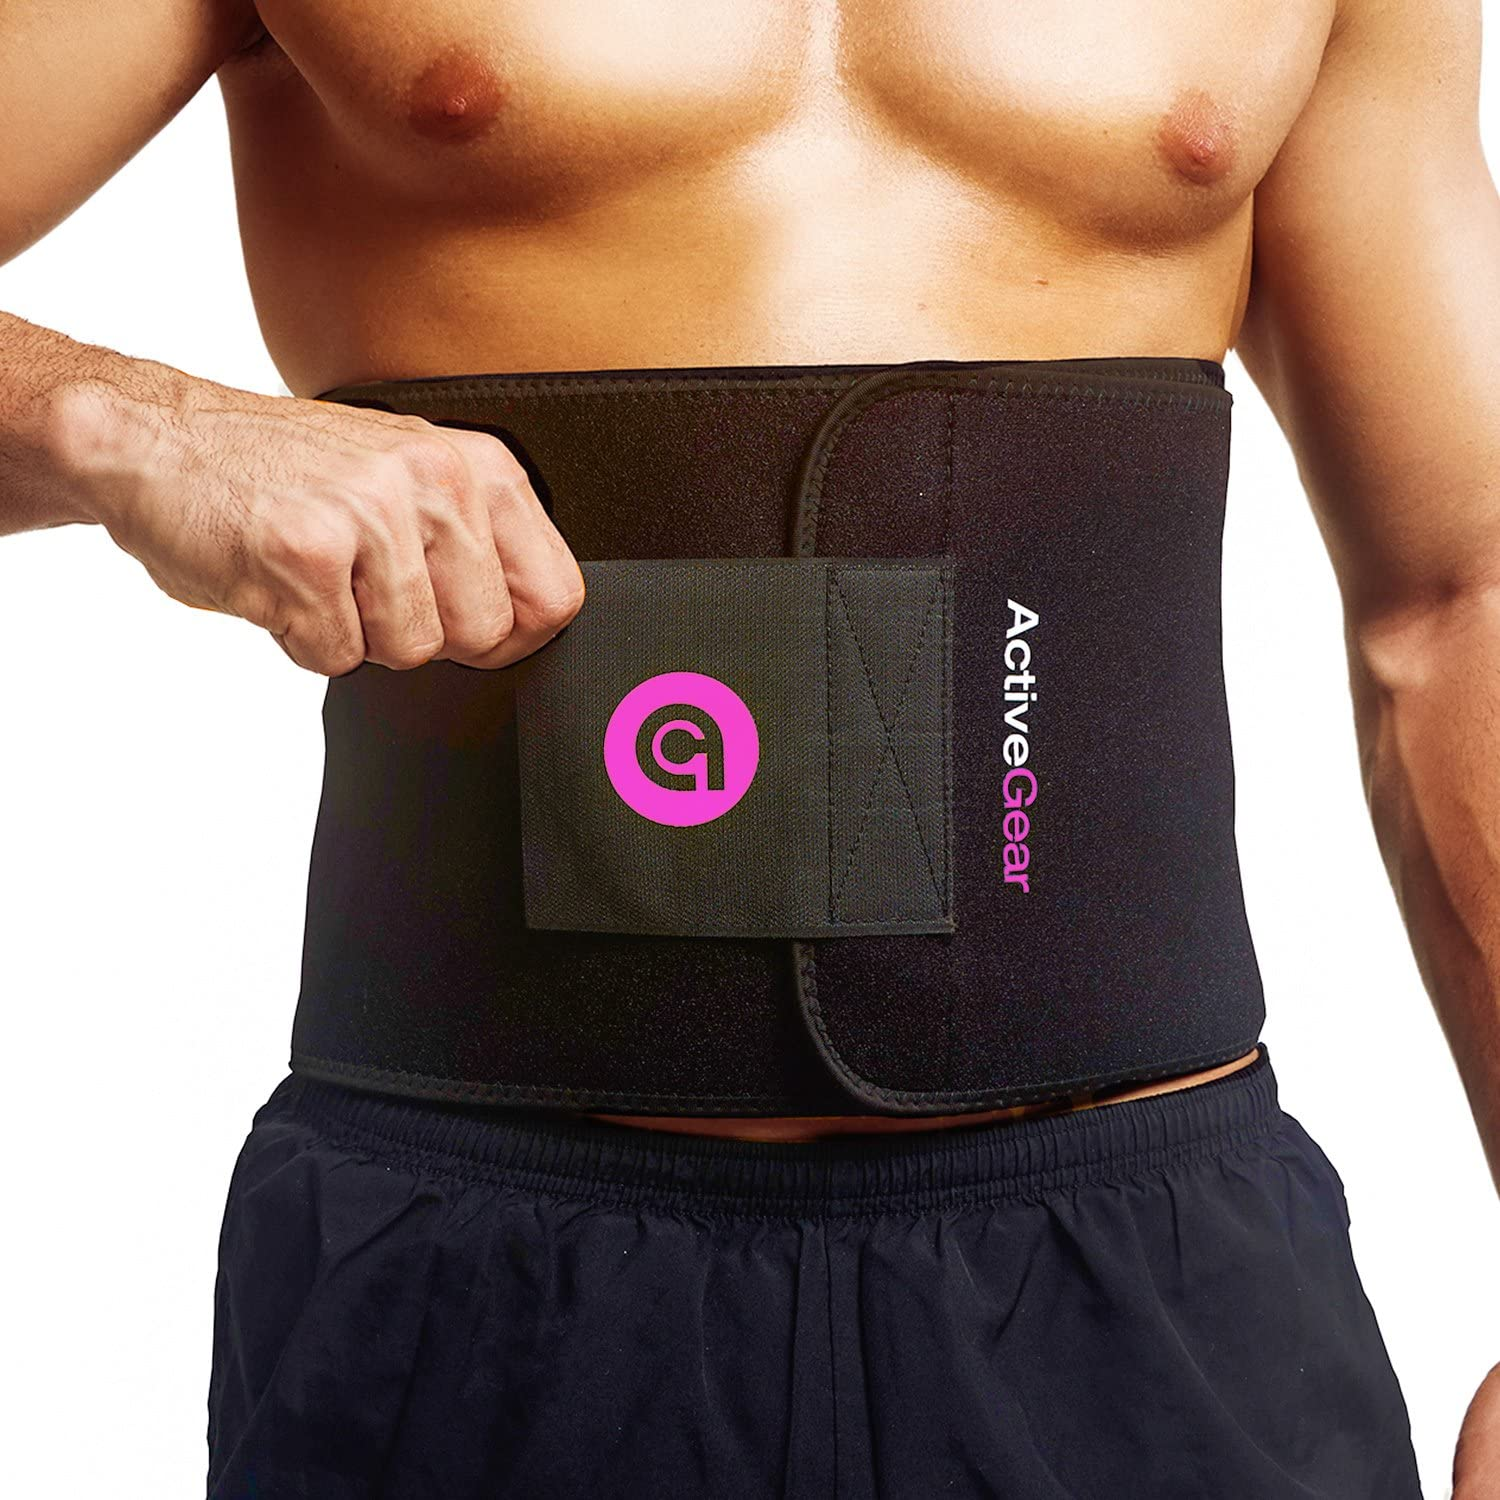 ActiveGear Neoprene Sweat Belt Waist Trimmer Belt For Men and Women For Slimming and Shedding Excess Weight – Waist Trainer For Abdominal Weight Loss